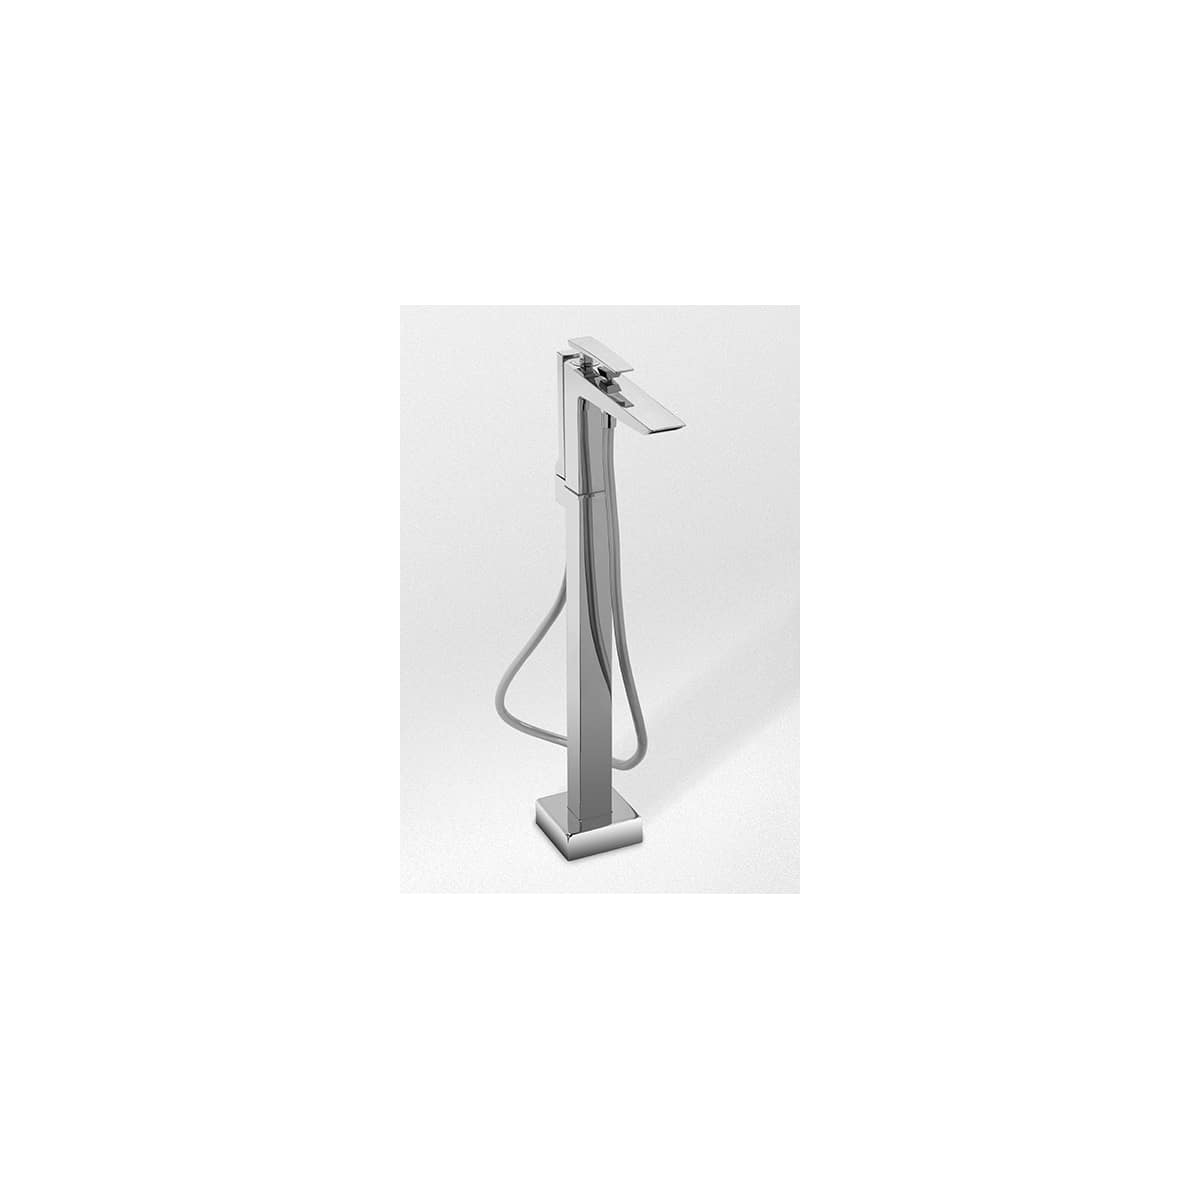 Toto Tb100sfcp Polished Chrome Single Handle Ada Compliant Active Exposed Bath And Shower Faucet Freestanding Tub Filler With 60 Inch Metal Hose